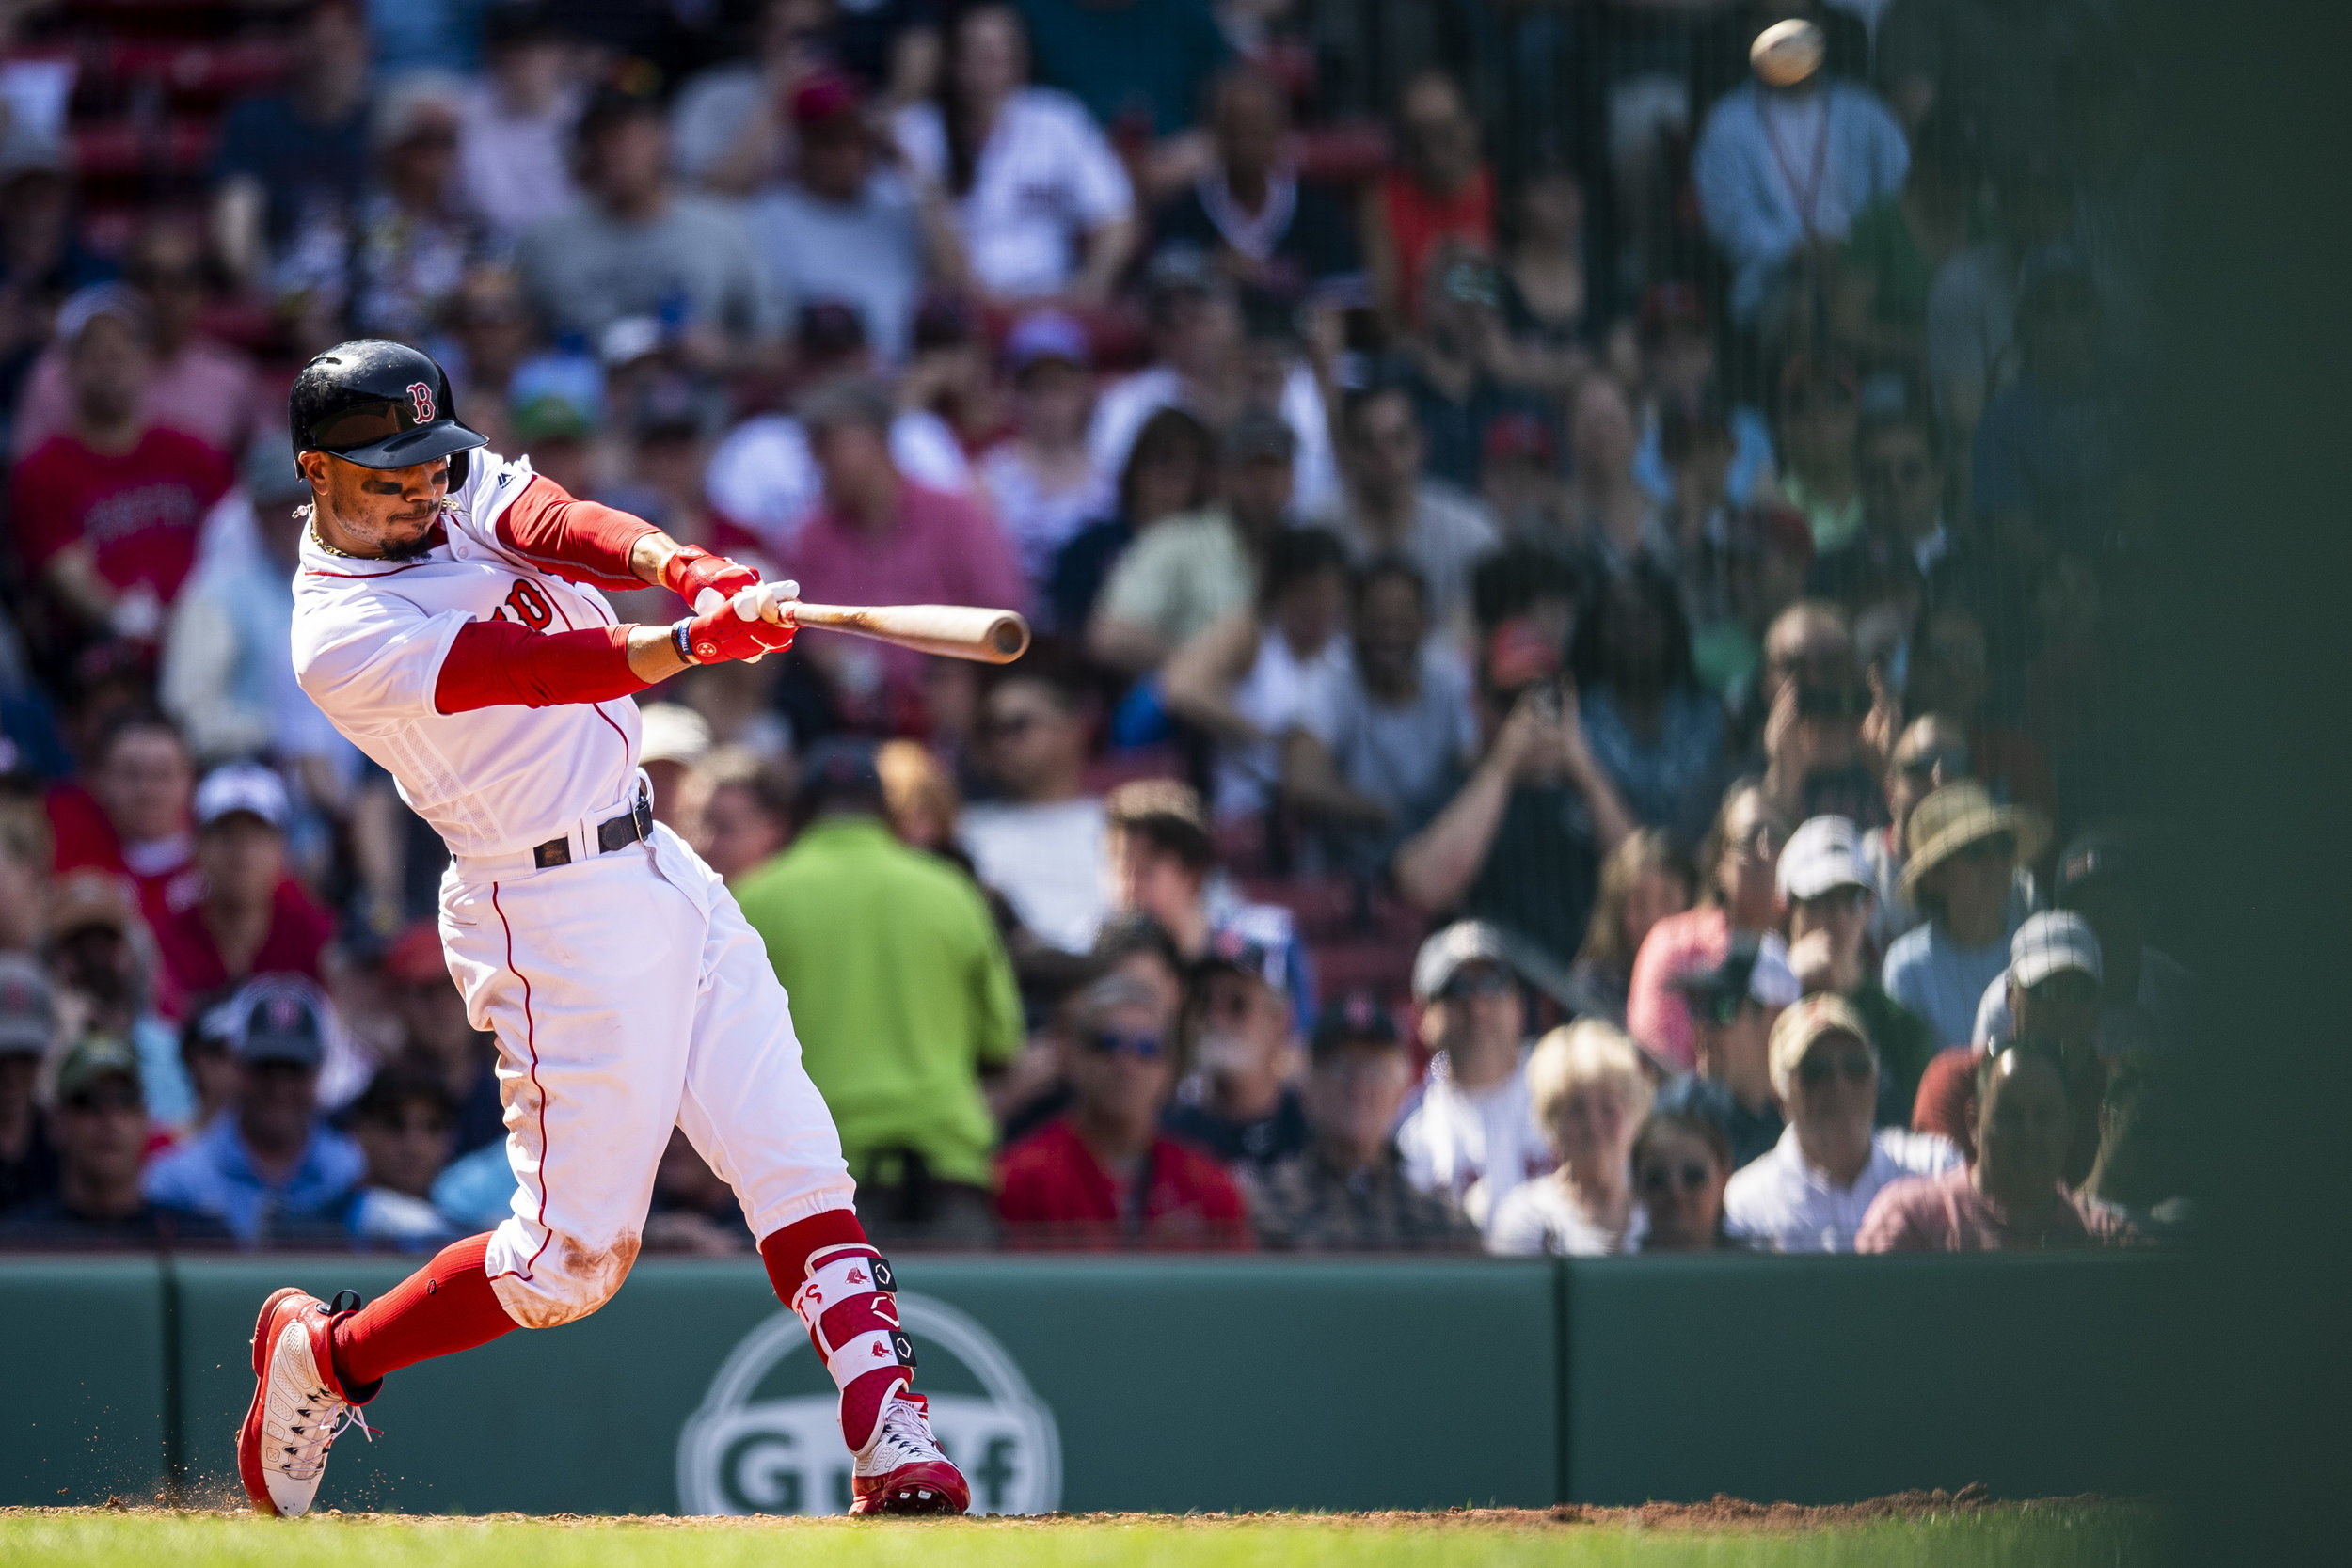 May 2, 2018, Boston, MA: Boston Red Sox outfielder Mookie Betts swings and hits his third home run of the game as the Boston Red Sox face the Kansas City Royals at Fenway Park in Boston, Massachusetts Wednesday, May 2, 2018. (Photo by Matthew Thomas/Boston Red Sox)